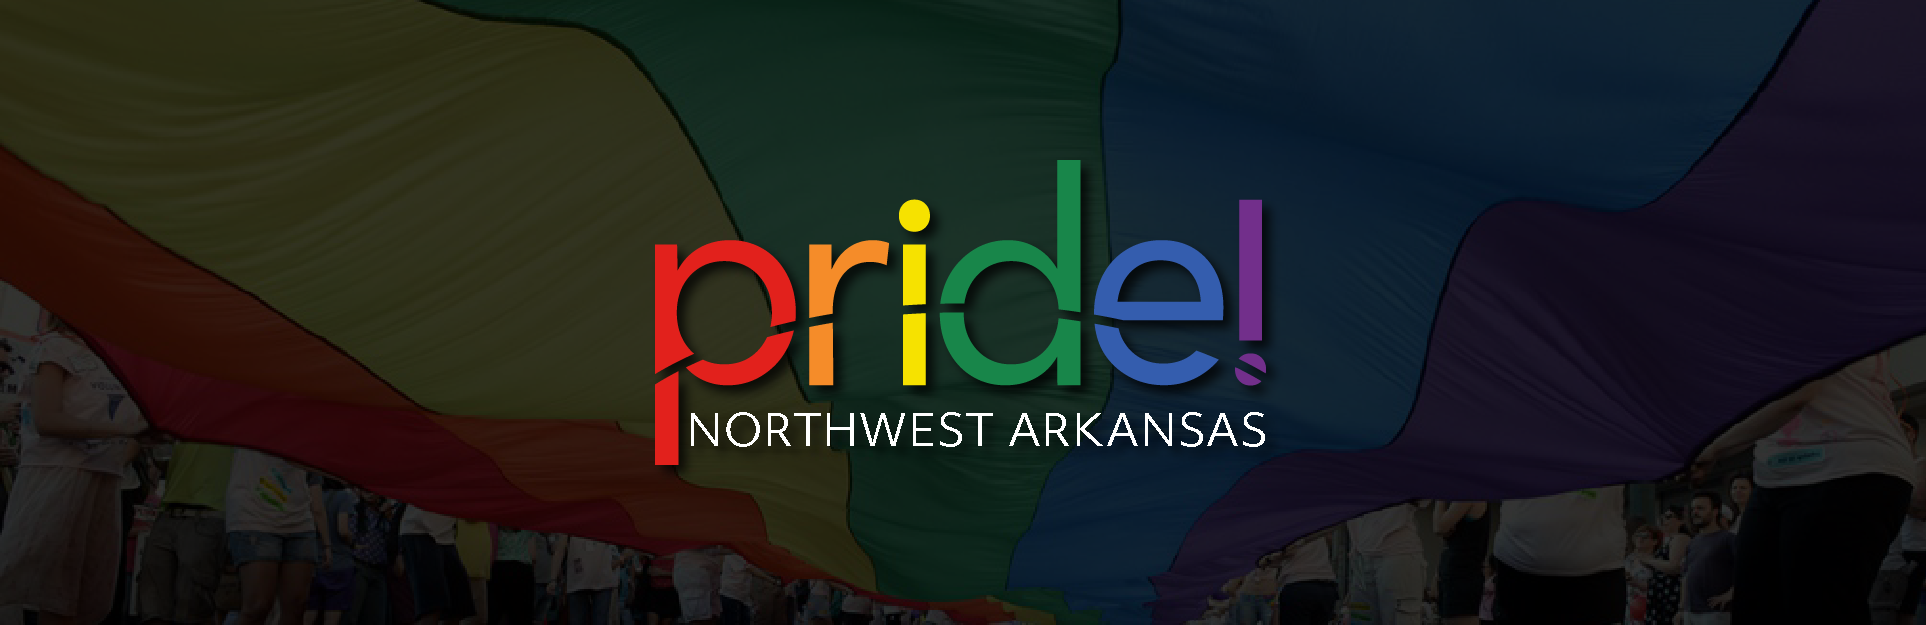 CC-CR-Website Pride Headers & Buttons-17